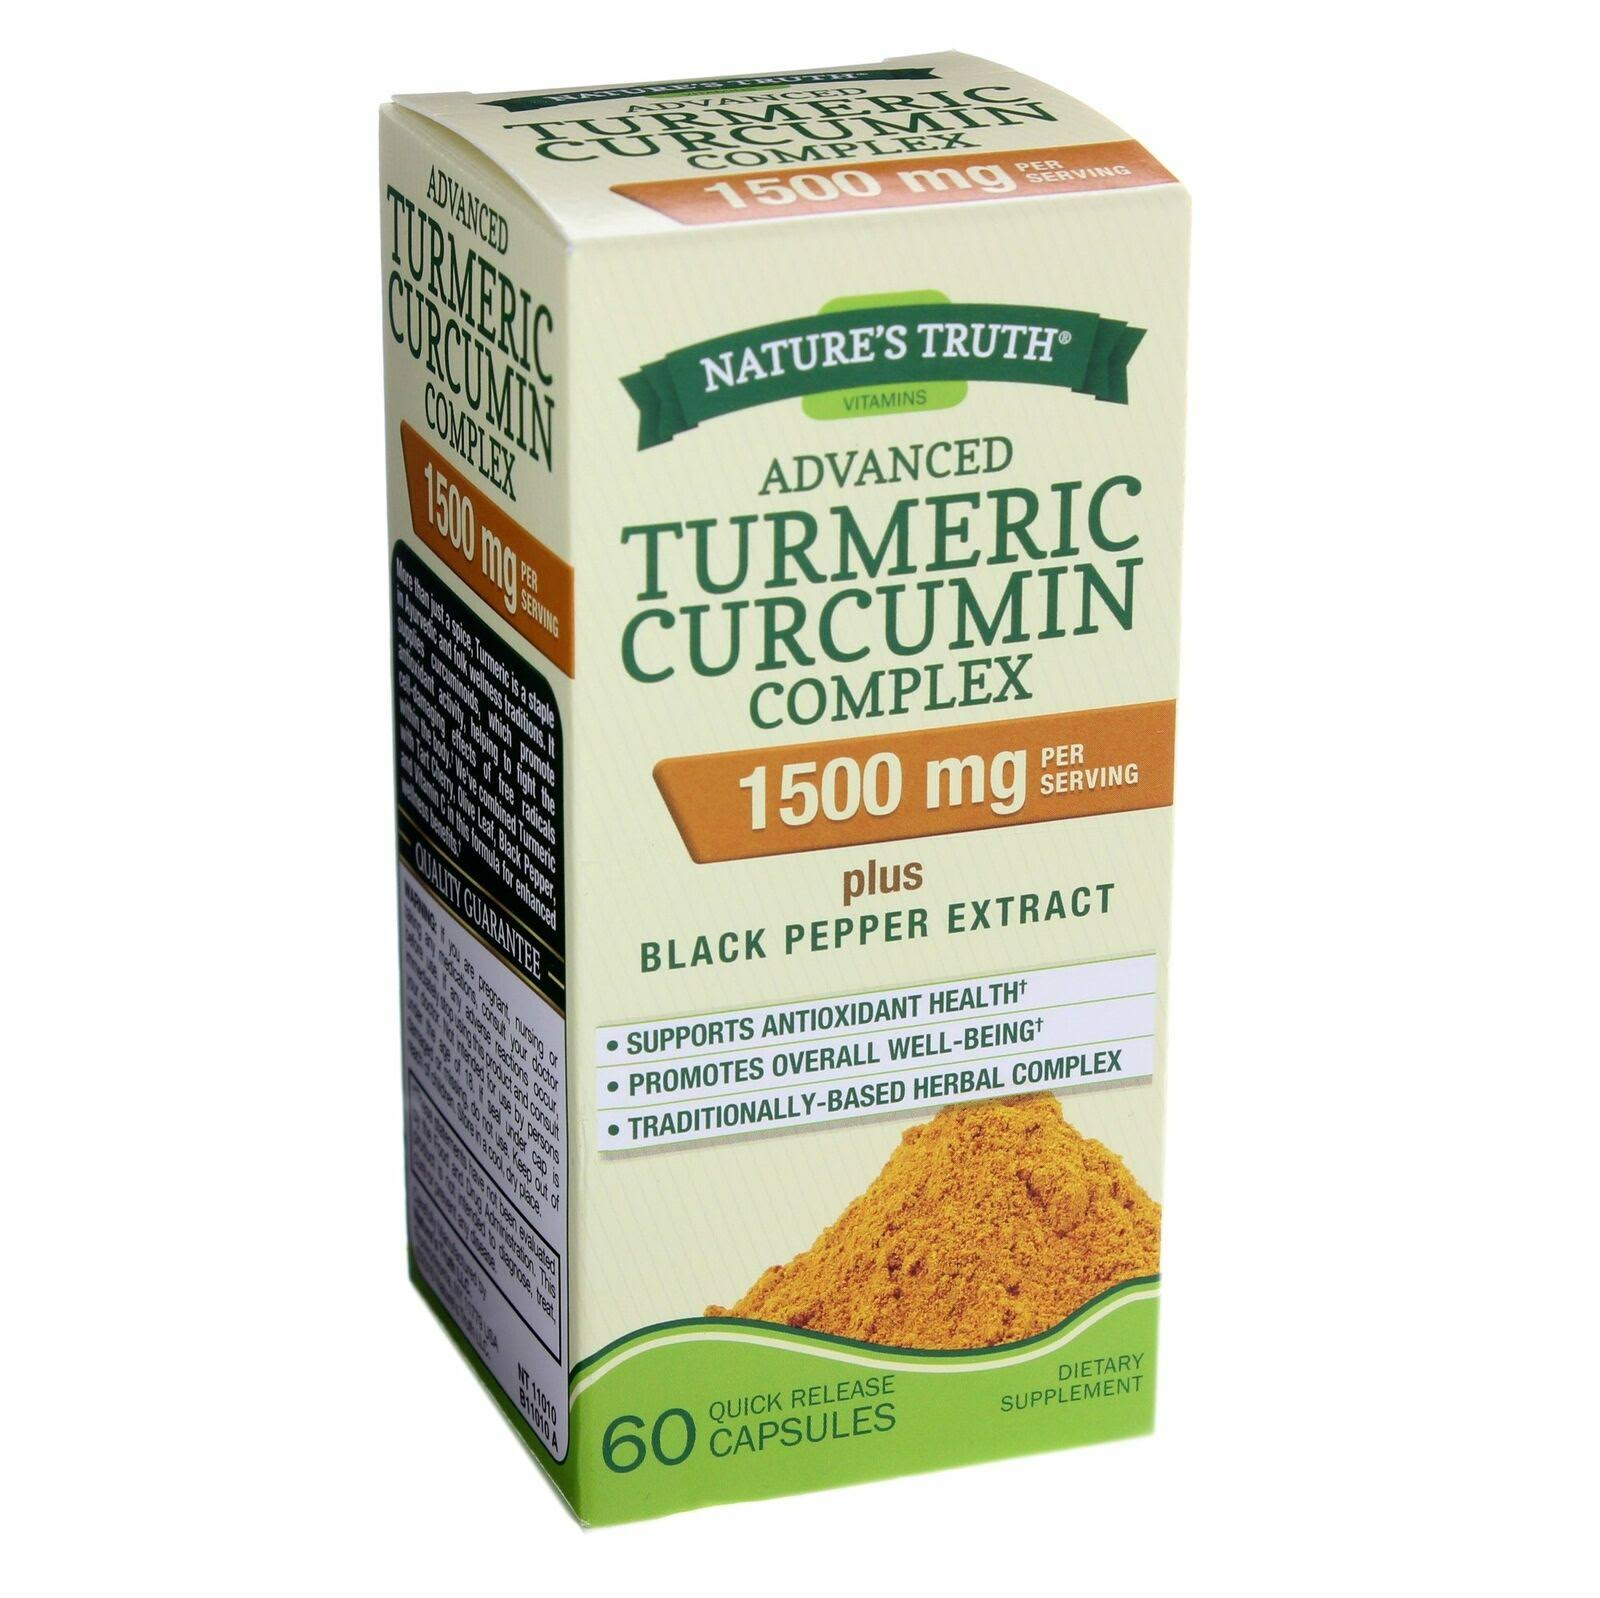 Natures Truth Vitamins Turmeric Curcumin, Rapid Release Liquid Softgels - 60 softgels